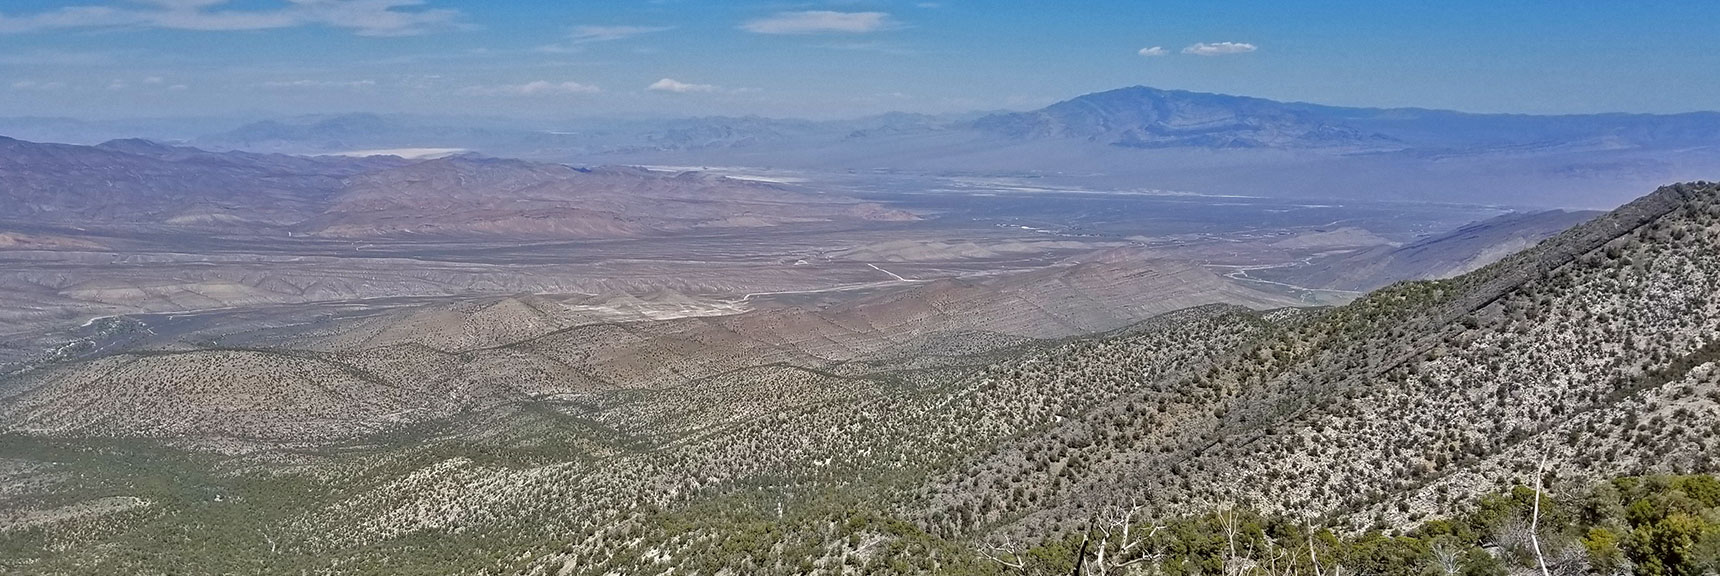 Sheep Range and Harris Springs Rd Viewed from Keystone Thrust Just West of El Padre Mountain, La Madre Mountains Wilderness, Nevada